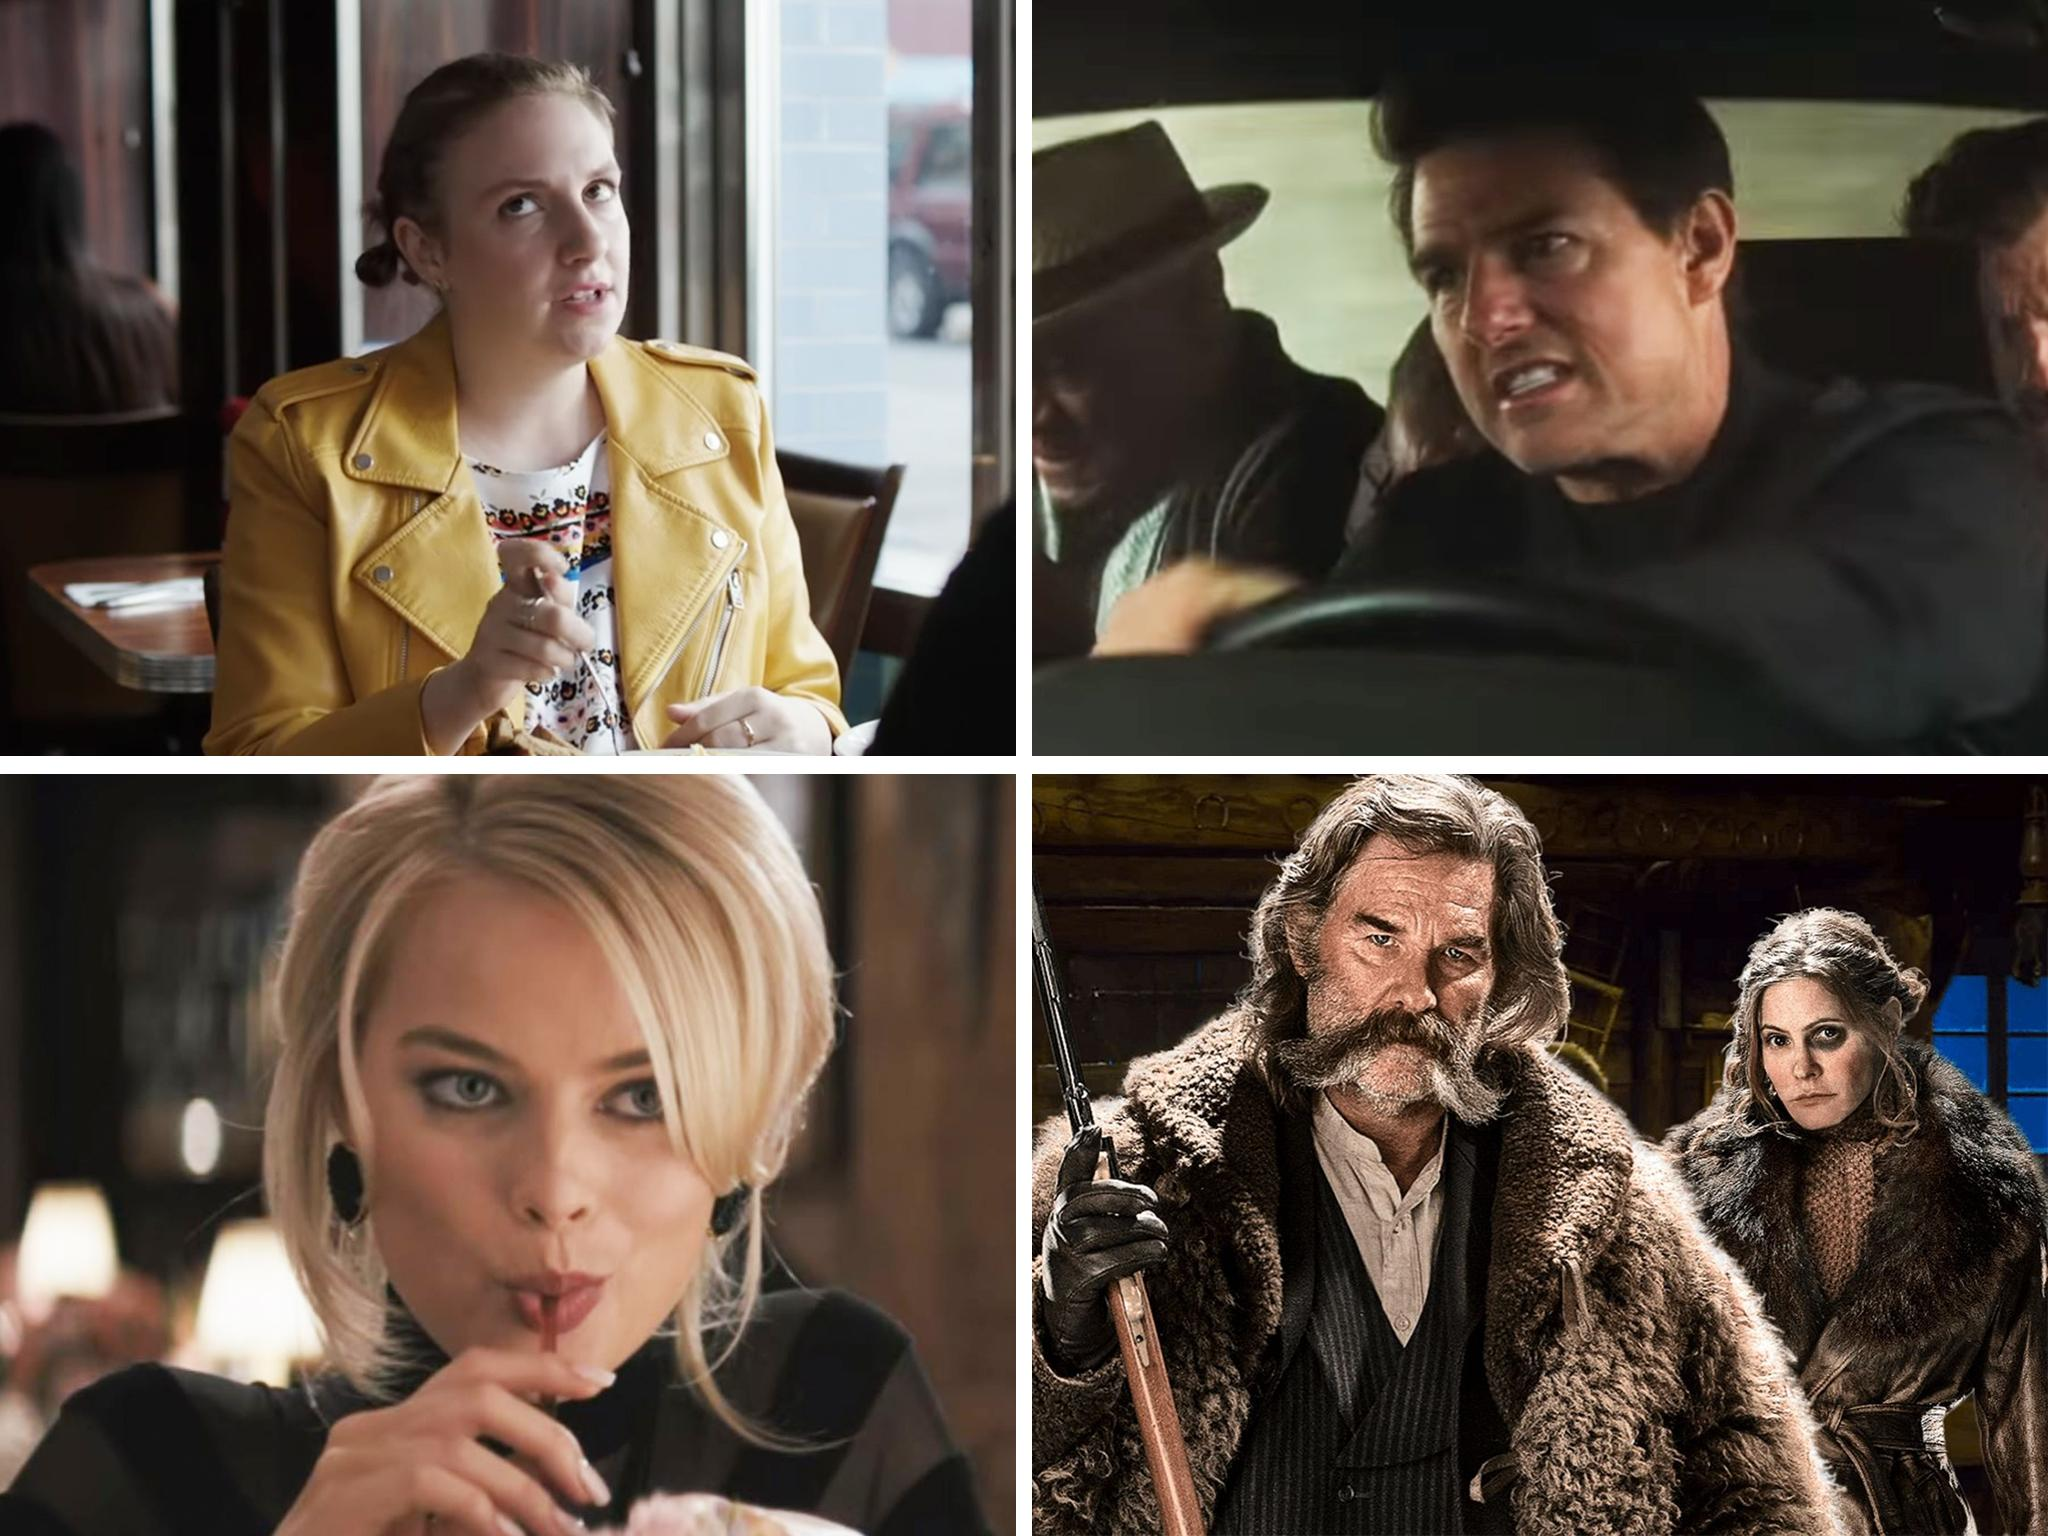 30 times things went wrong on set, from The Princess Bride to Wolf of Wall Street